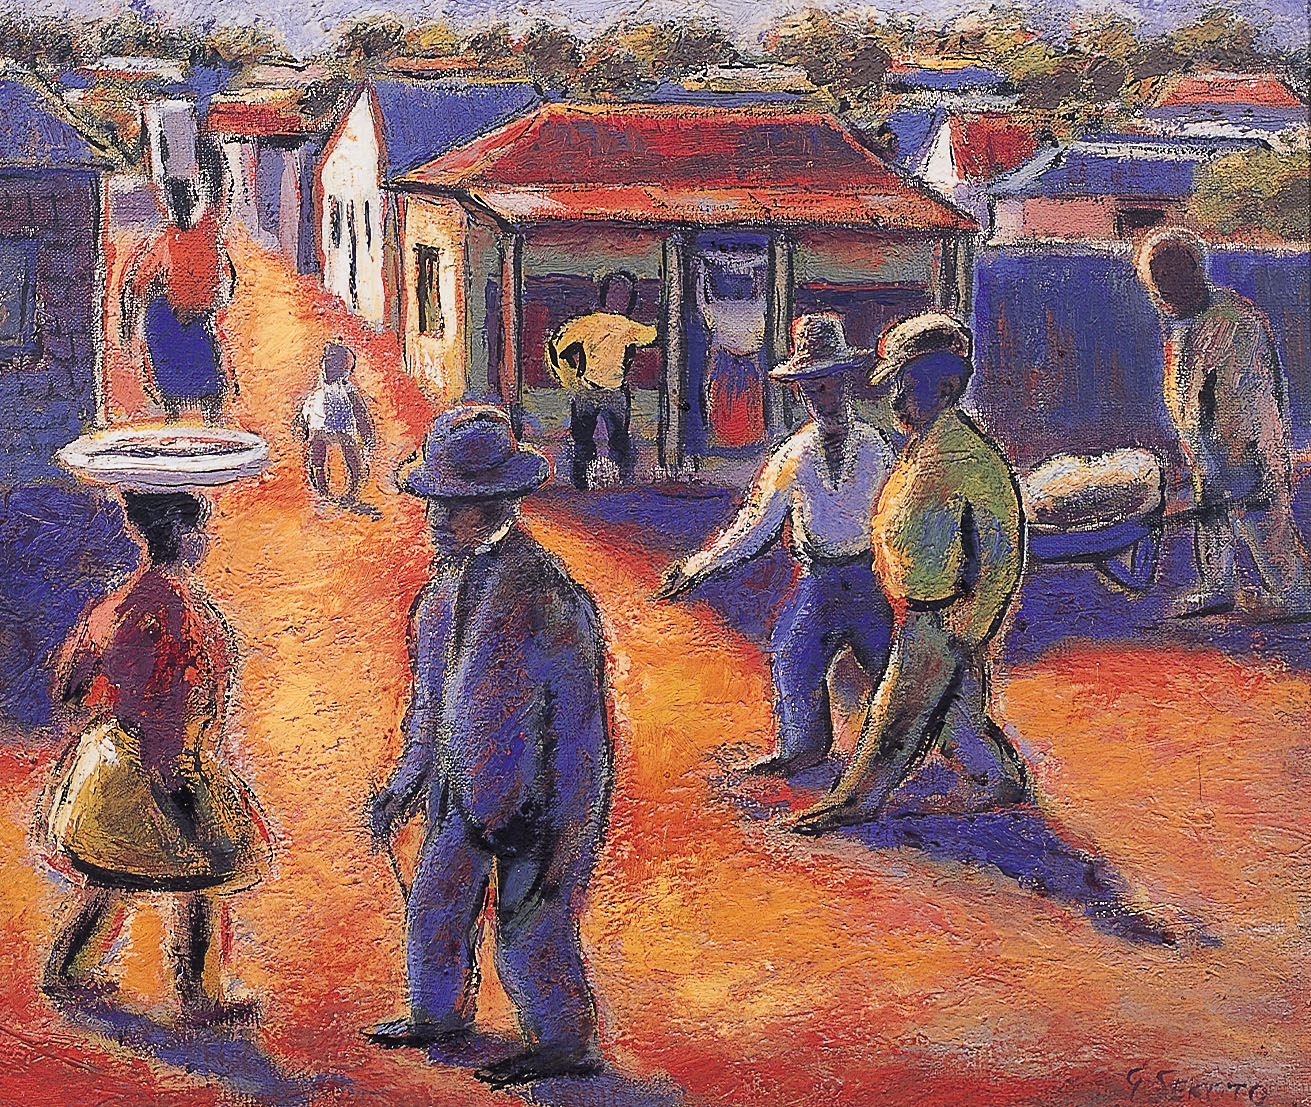 Artists: South African Art Theft: Four Stolen Paintings Found In